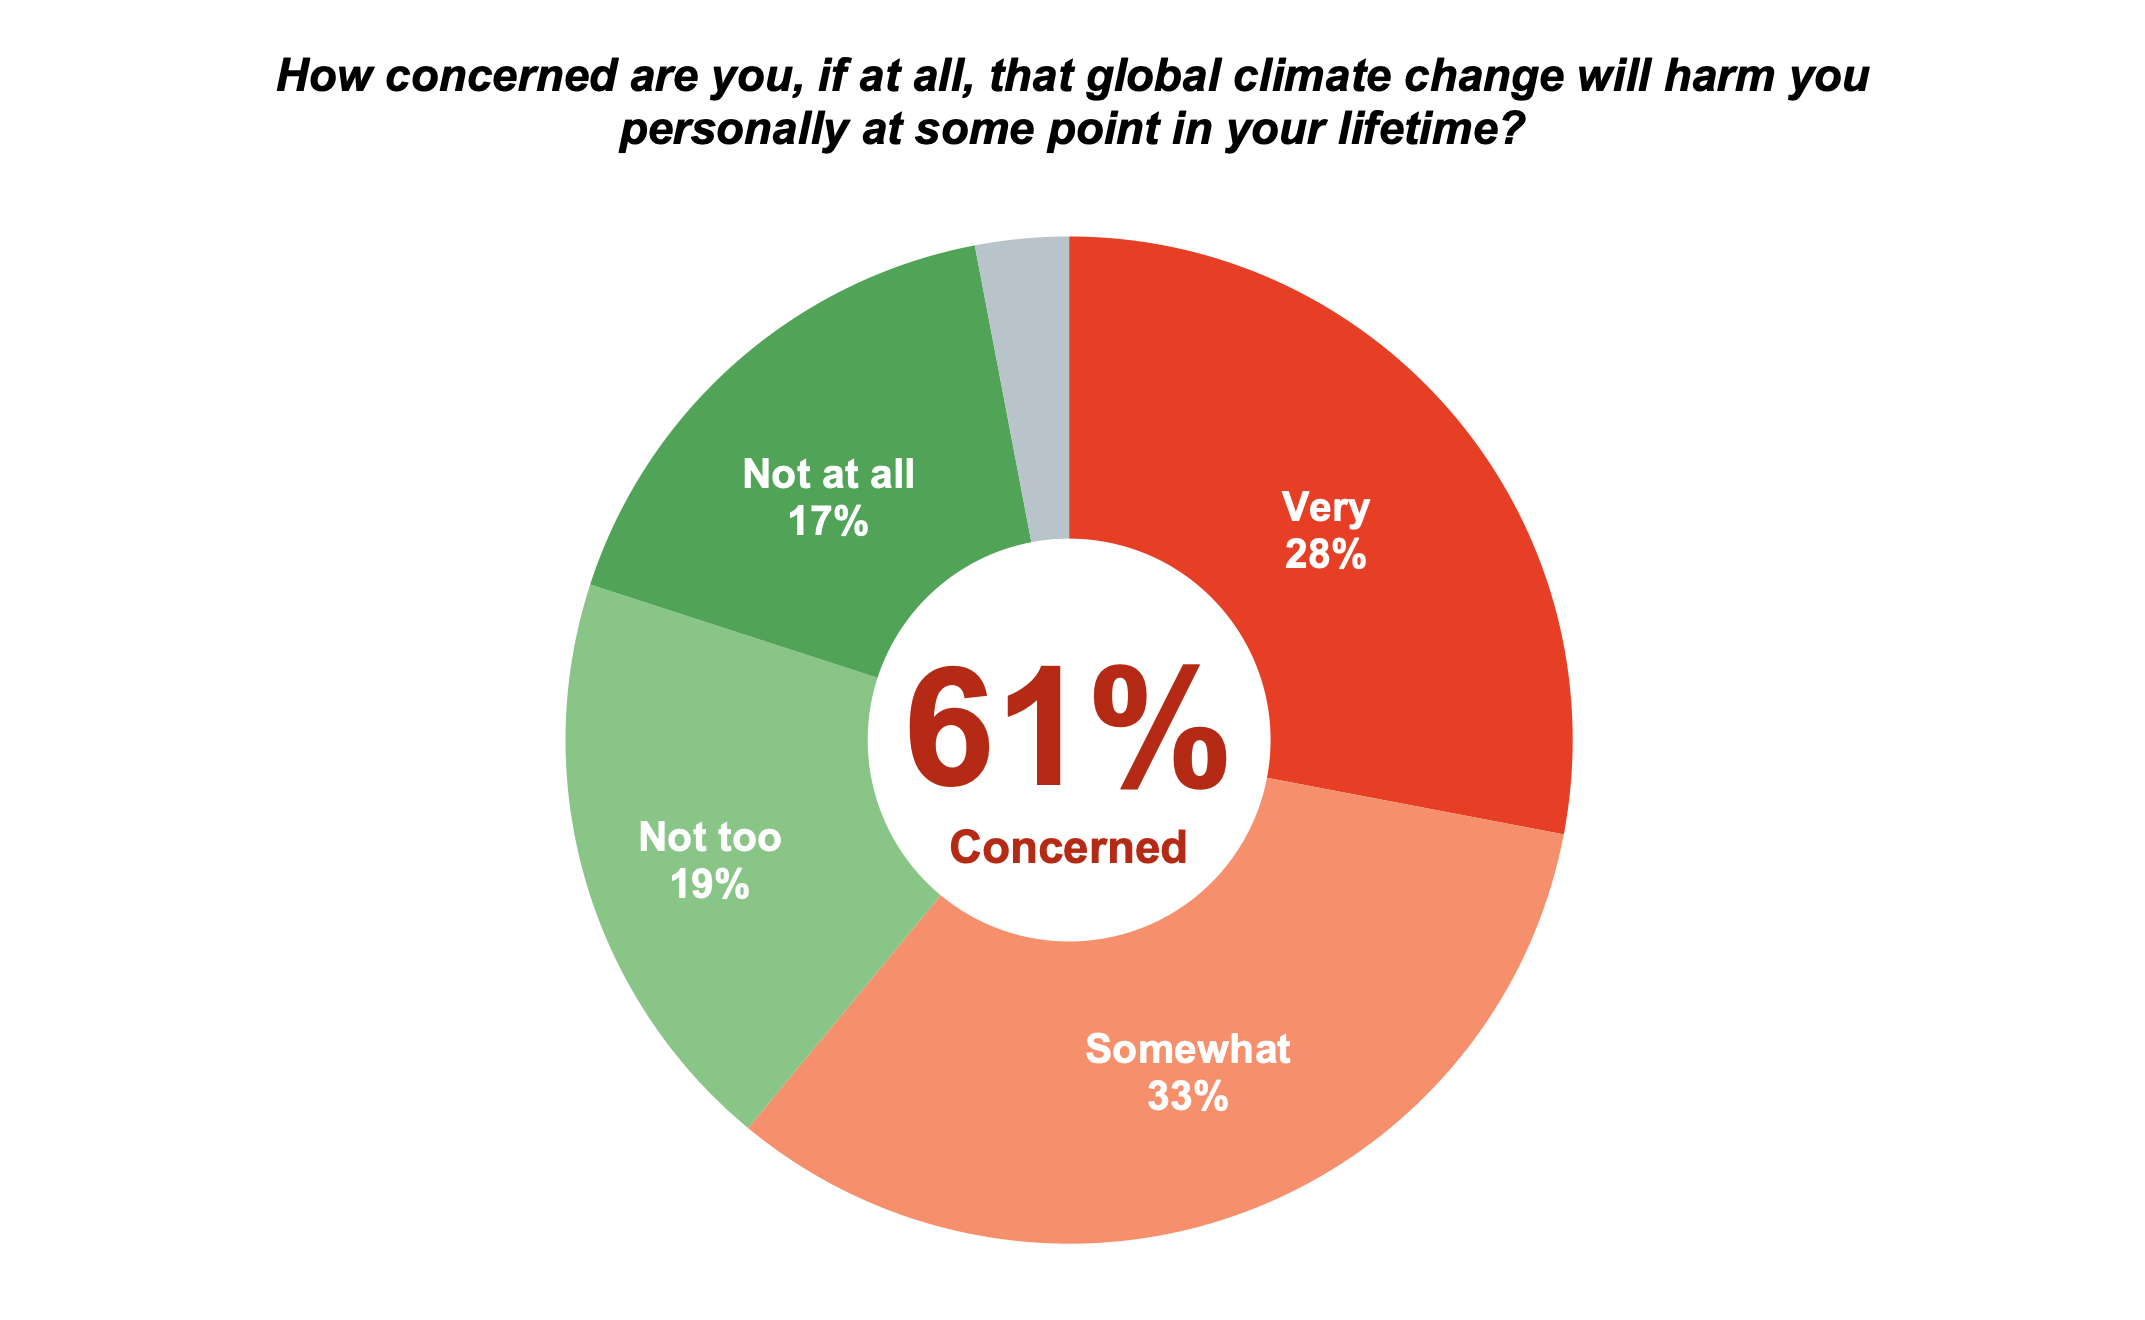 Pie chart results from asking Oregon residents how concerned they are, if at all, that global climate change will harm them personally at some point in their lifetime.